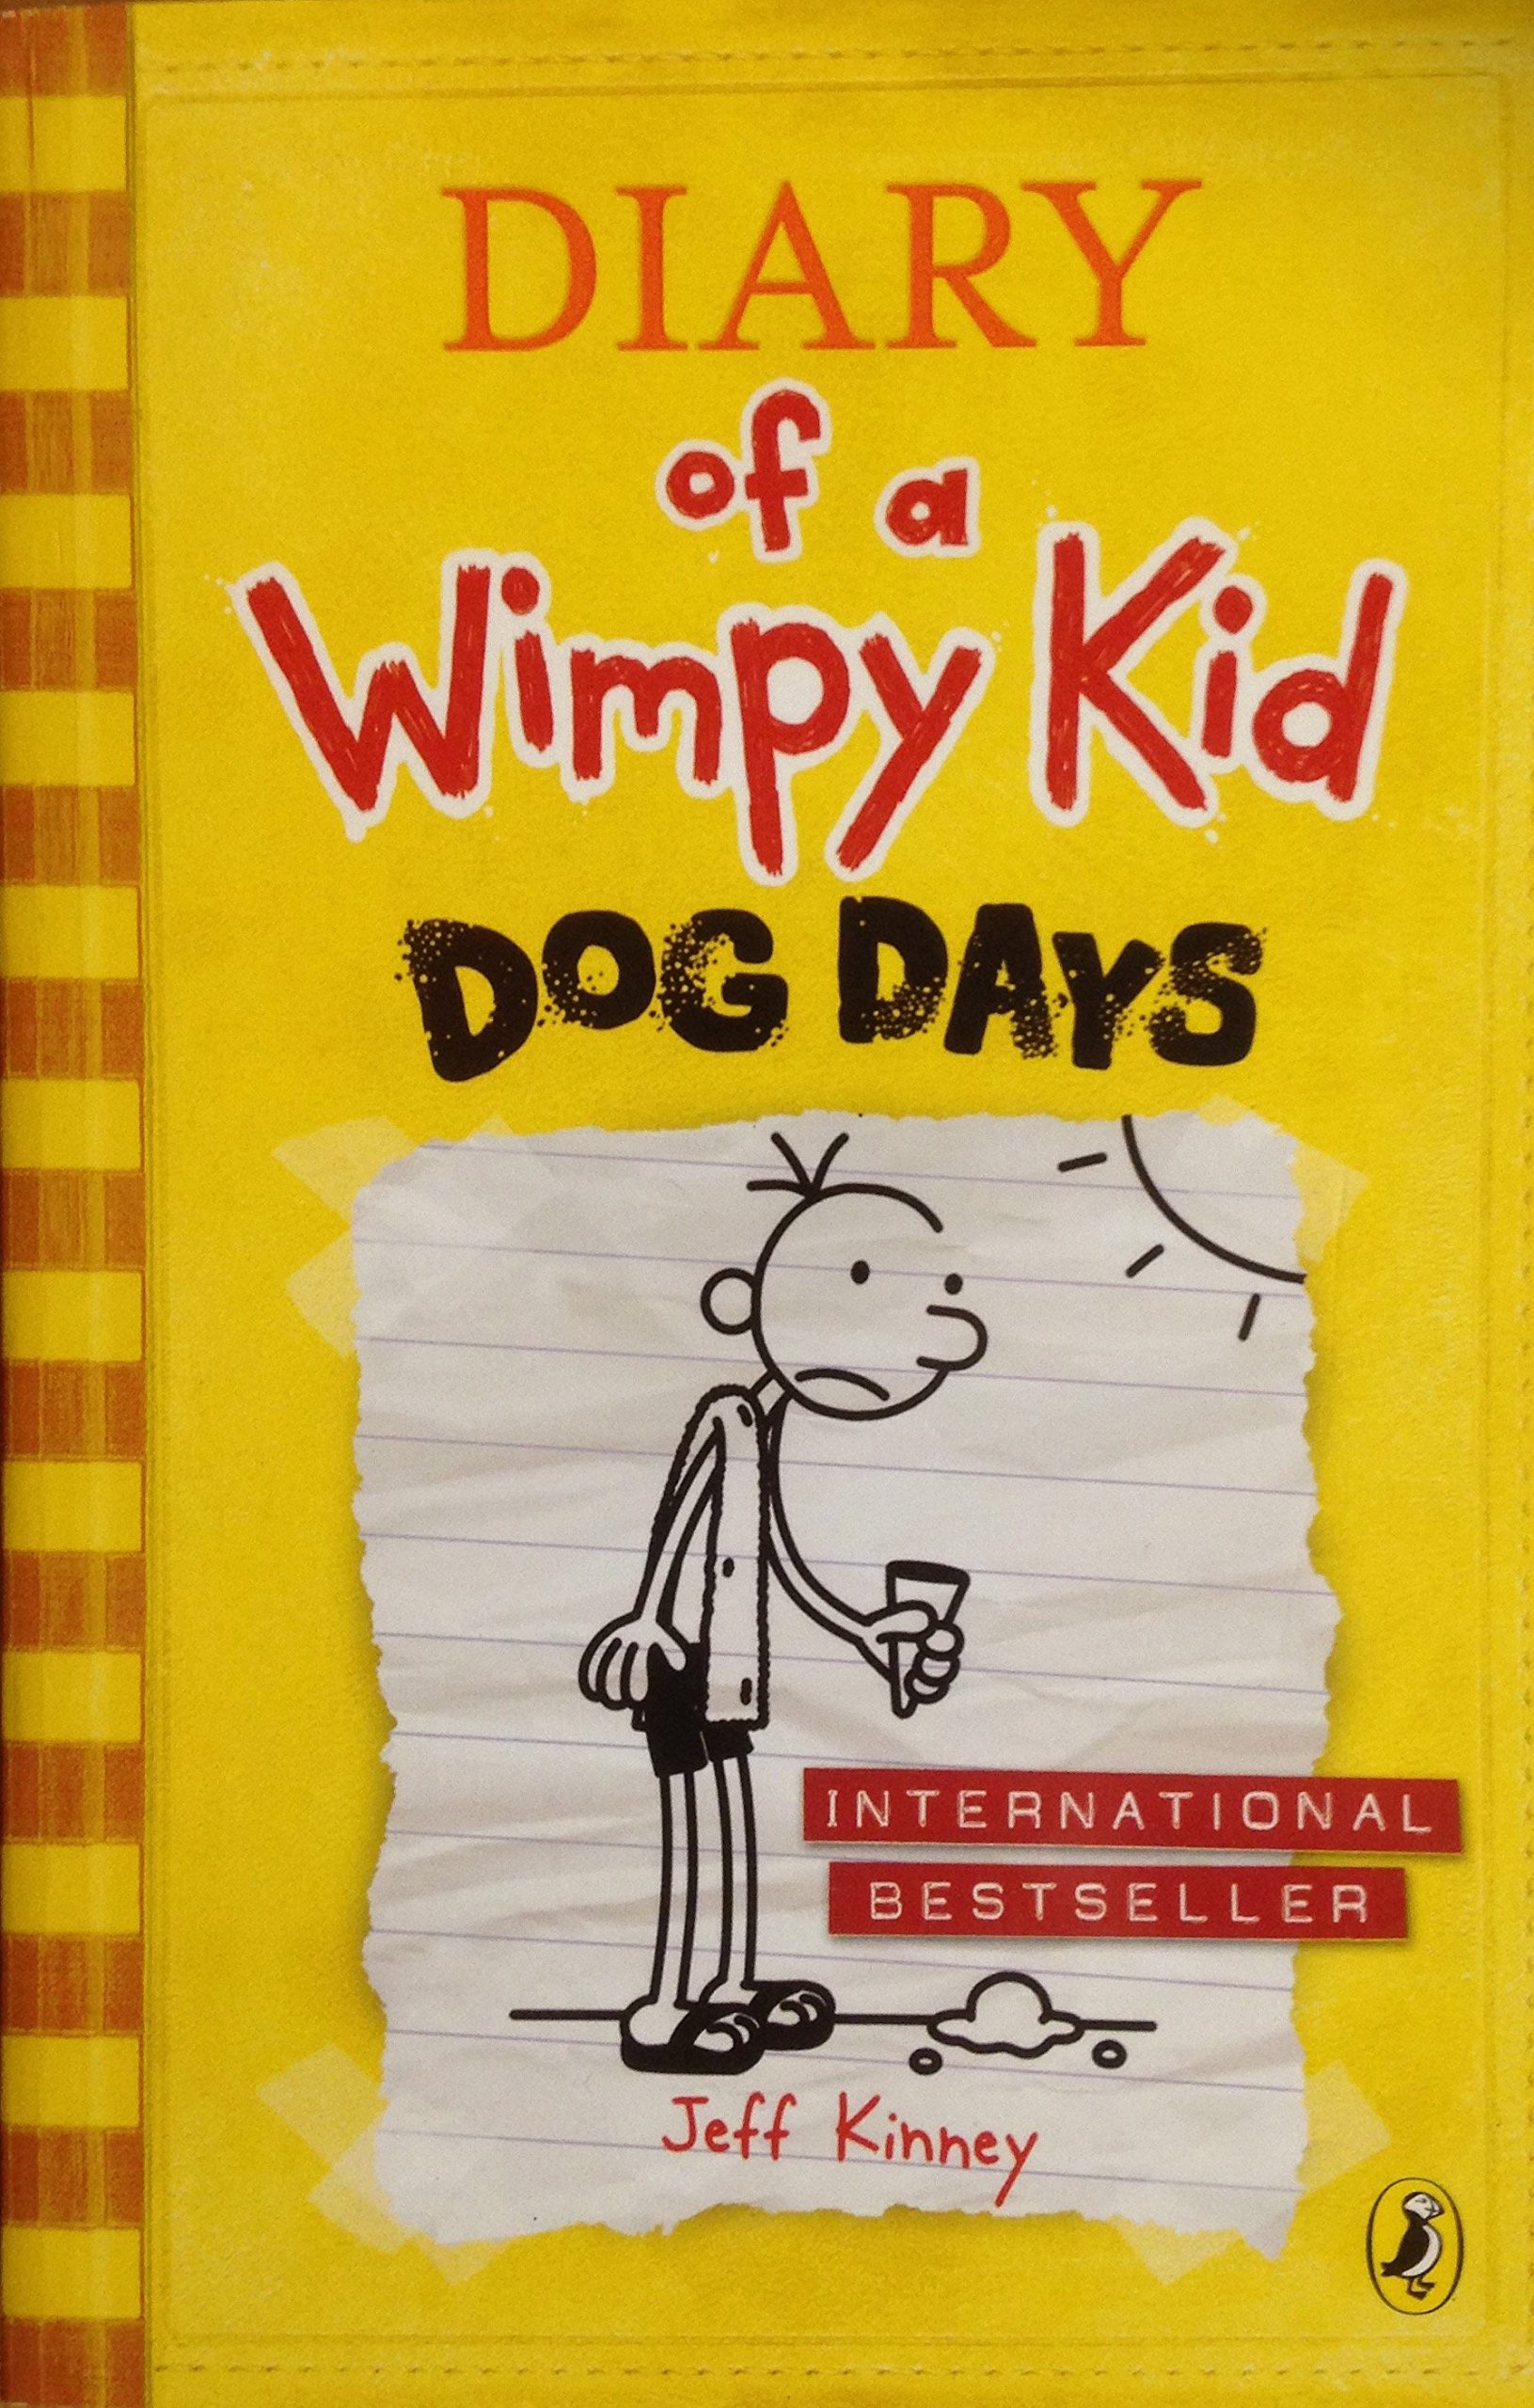 Amazoncom Dog Days Diary of a Wimpy Kid book 4 9780141343143 1631x2560